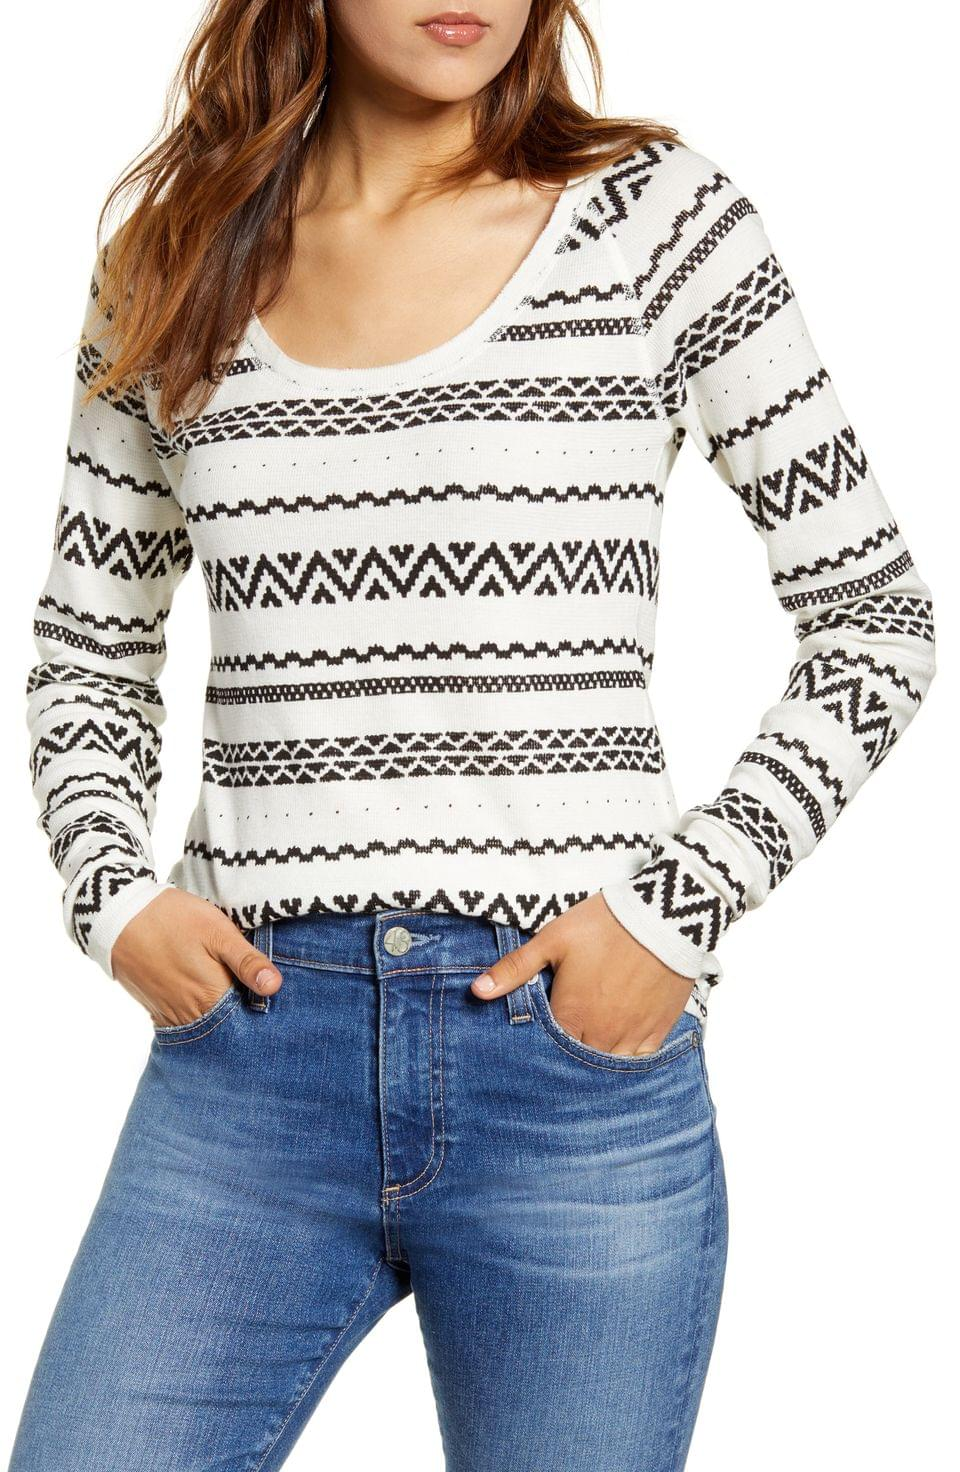 Women's Lucky Brand Graphic Print Cotton Thermal Top